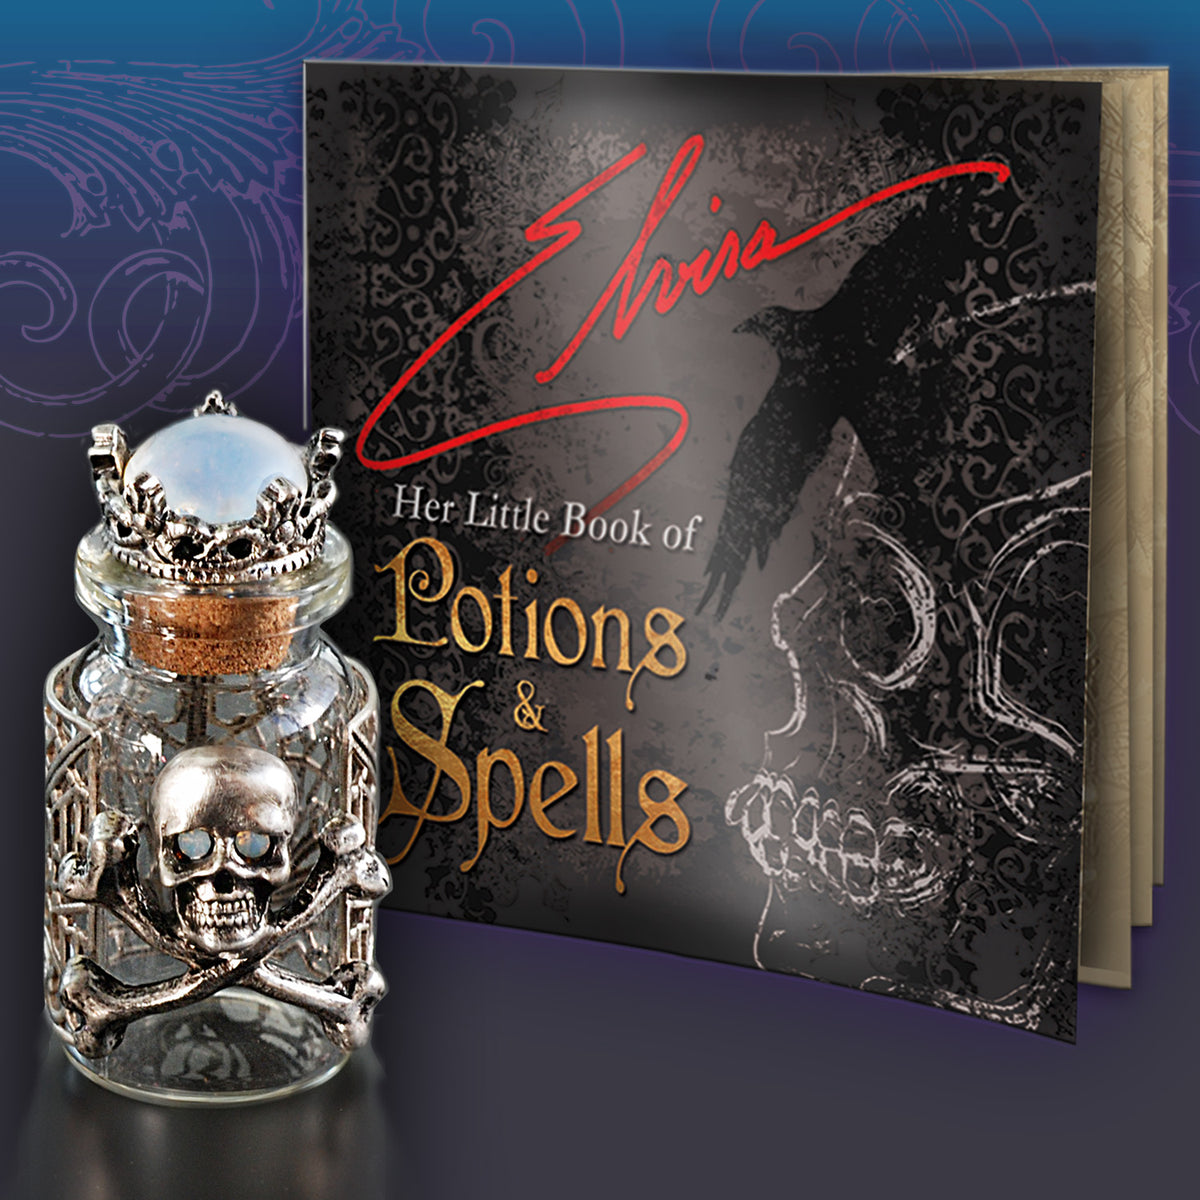 NEW! Limited Edition Elvira's Poison Bottles - Love - sweetromanceonlinejewelry